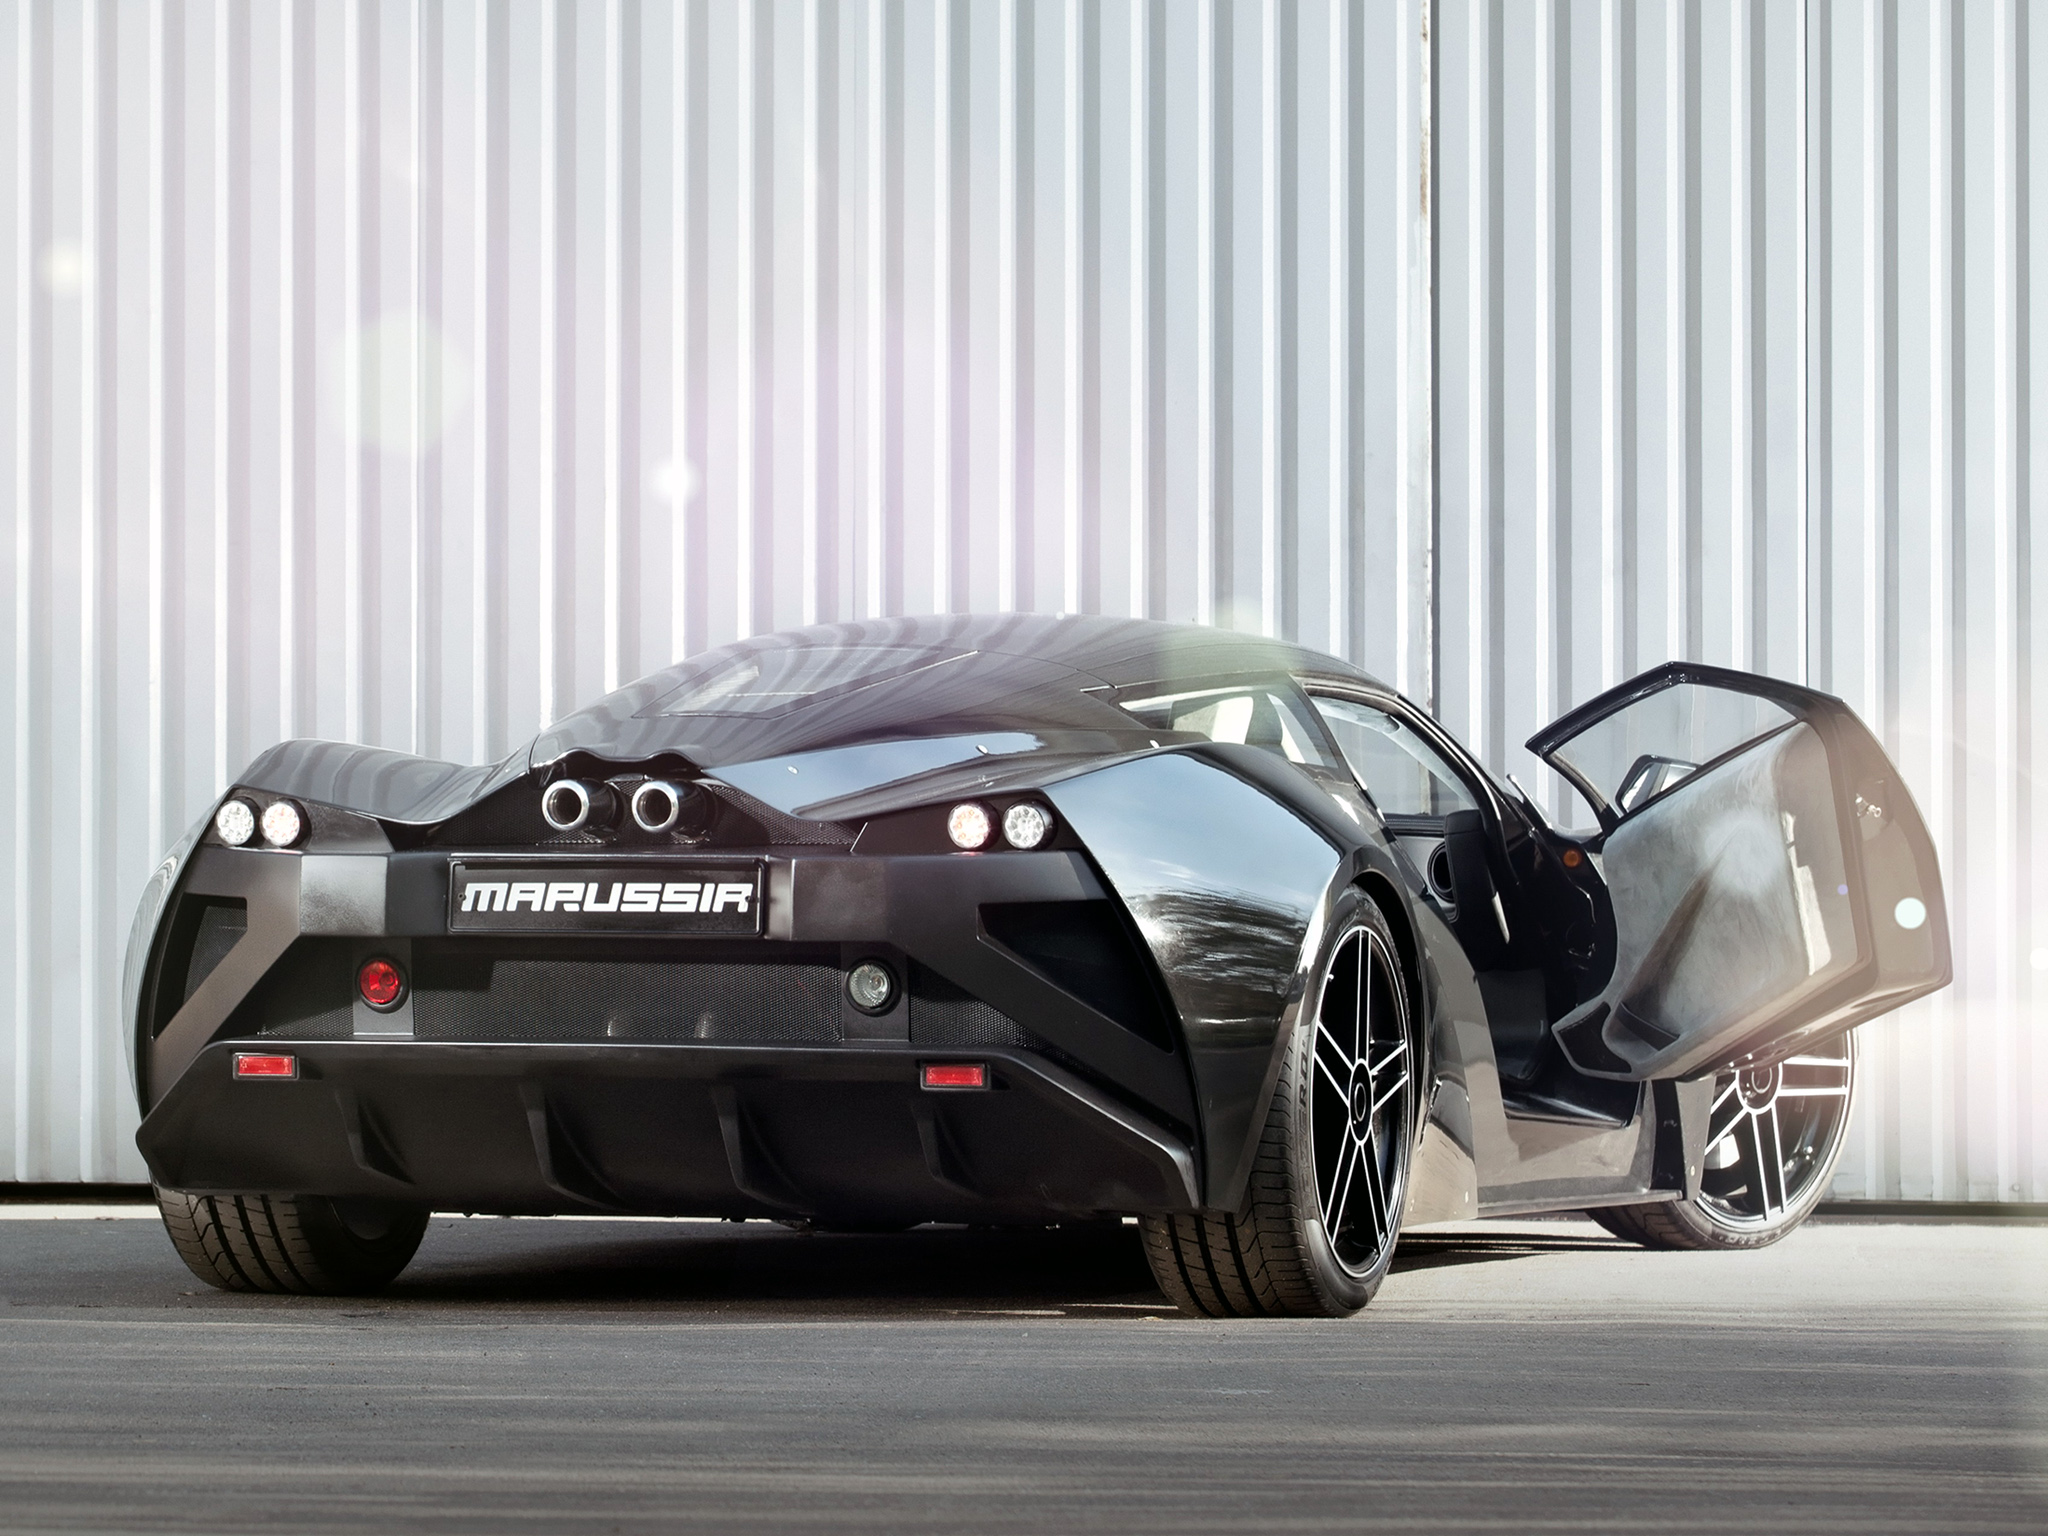 Marussia: What Remains Of The Little Russian Supercar That ...